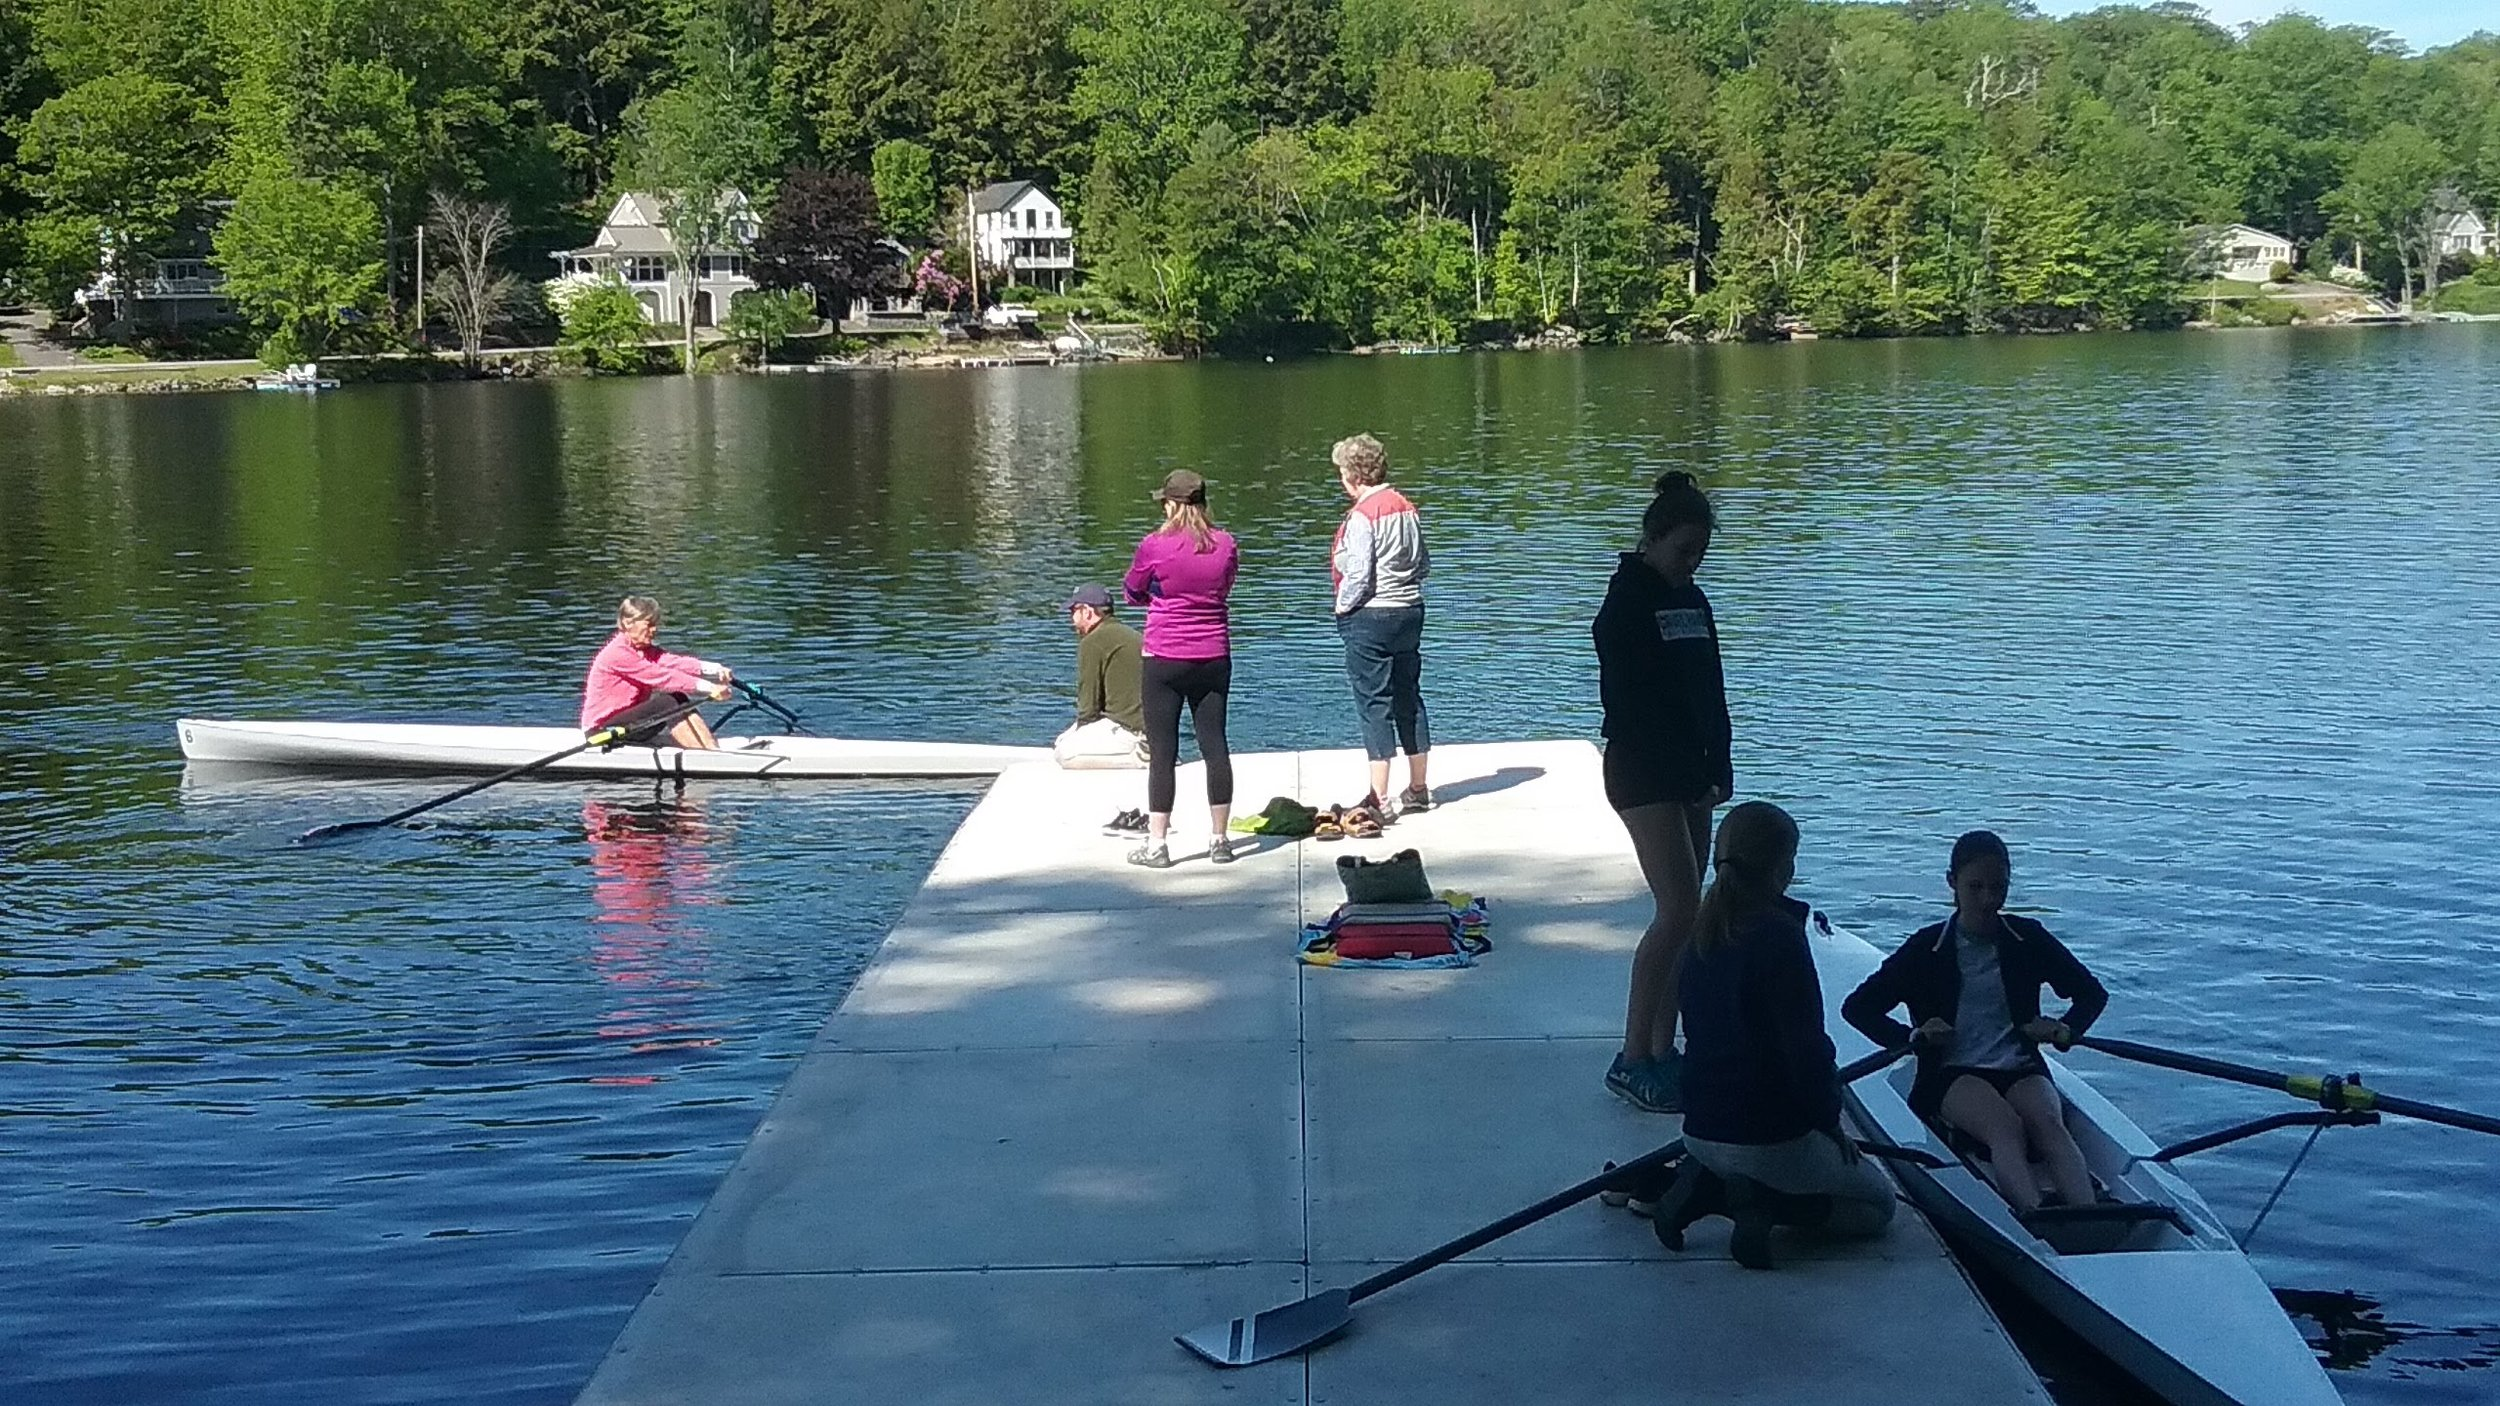 - MASTER'S learn to row level 1